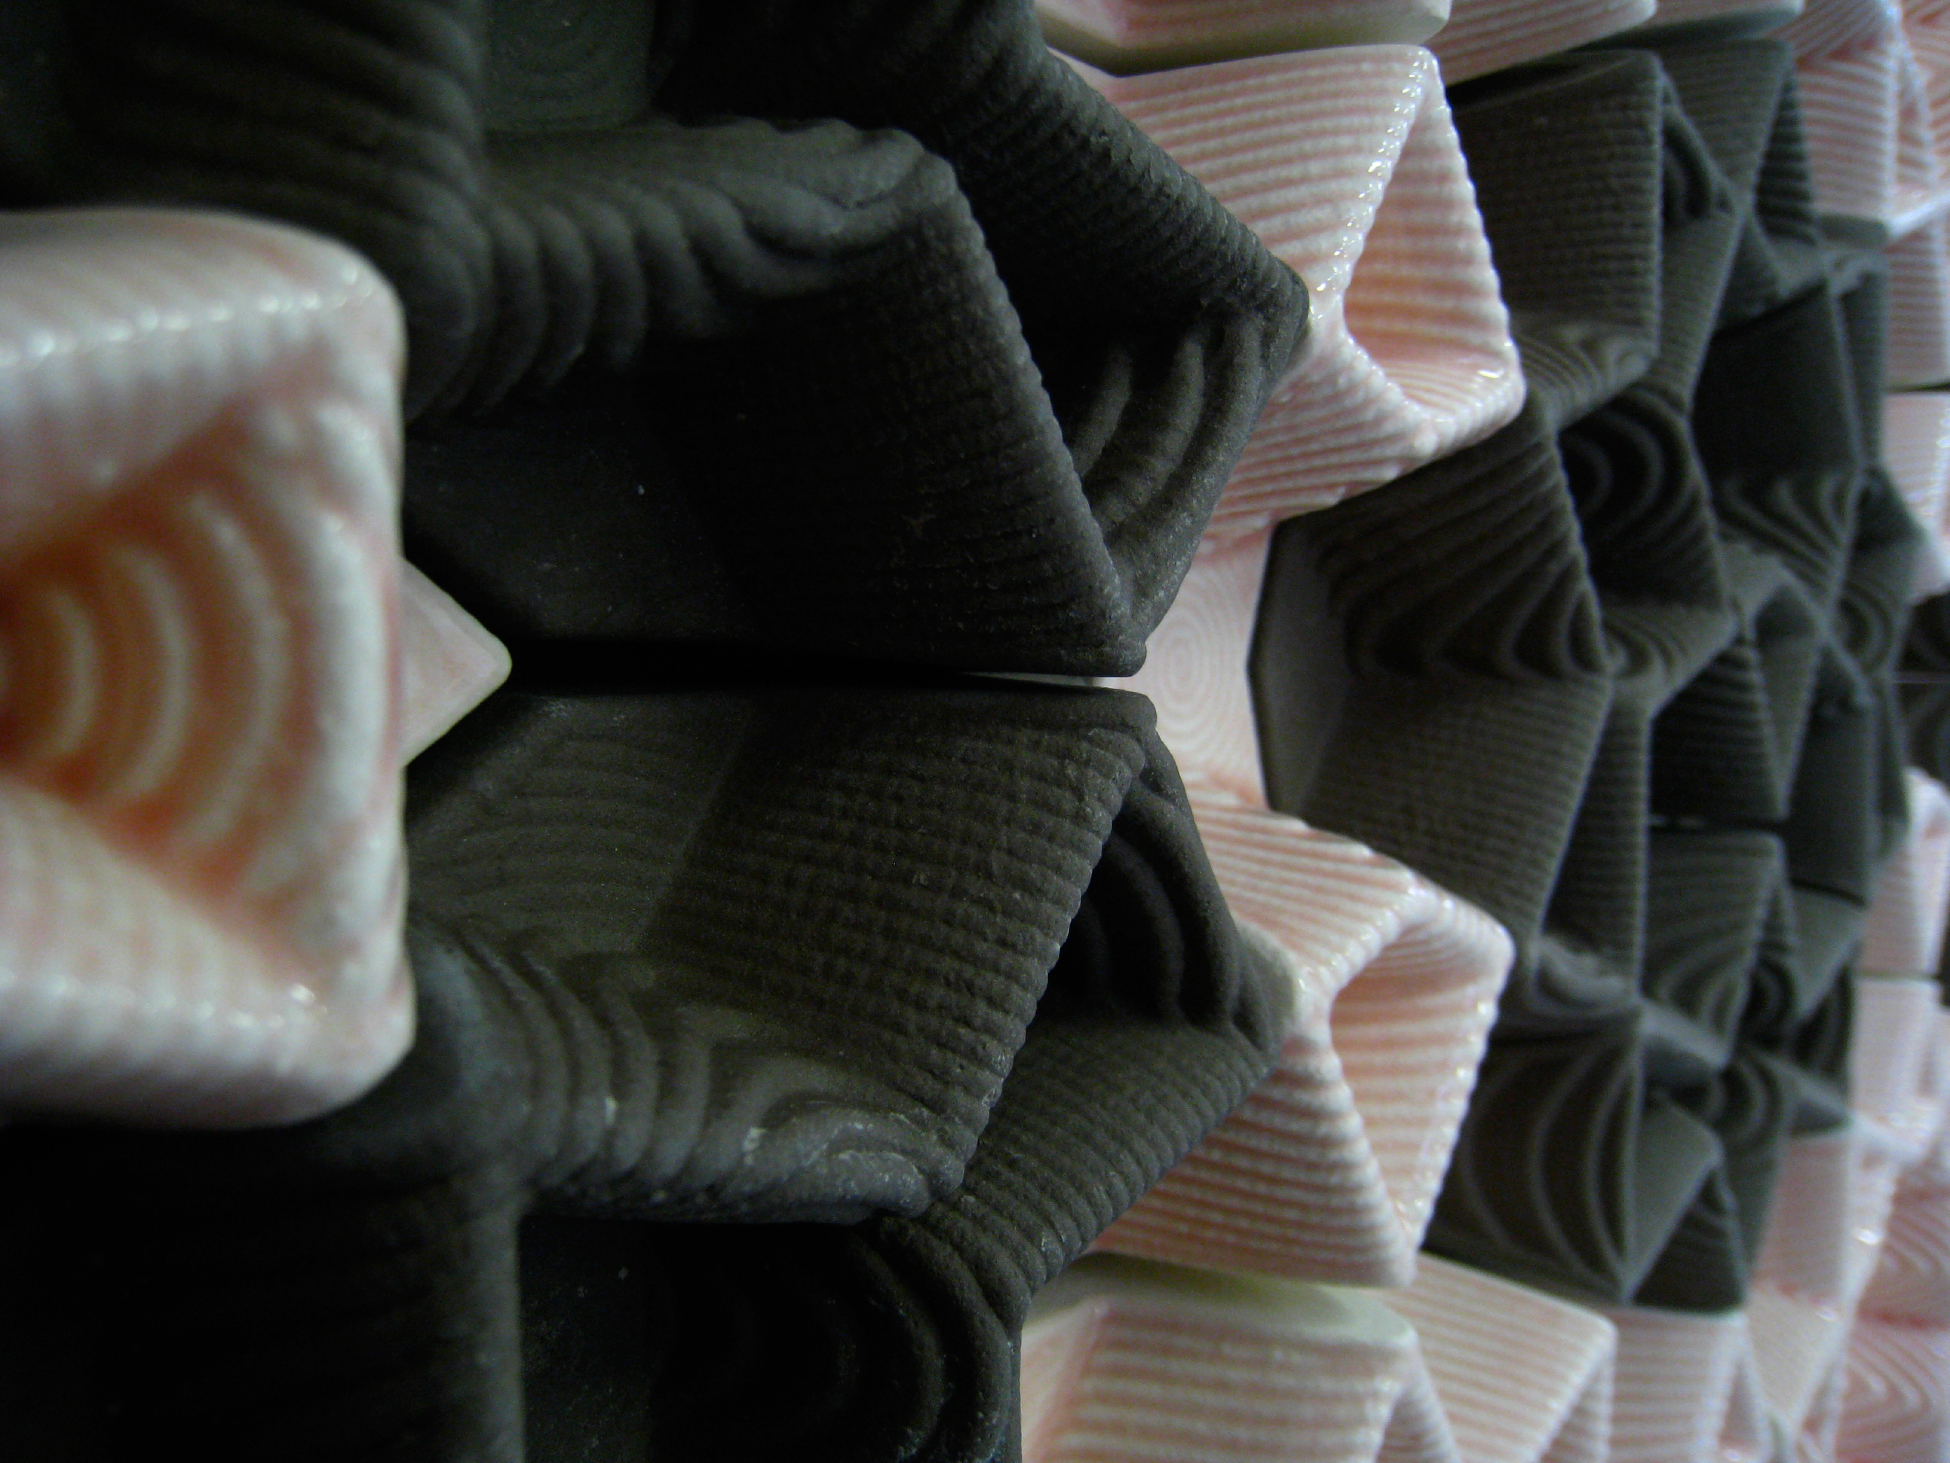 Data clay projects digital islam penrose tiling system that the large dodecahedrons would shrink more than the smaller tiles thus a gap was formed around these that was slightly larger than anticipated dailygadgetfo Images